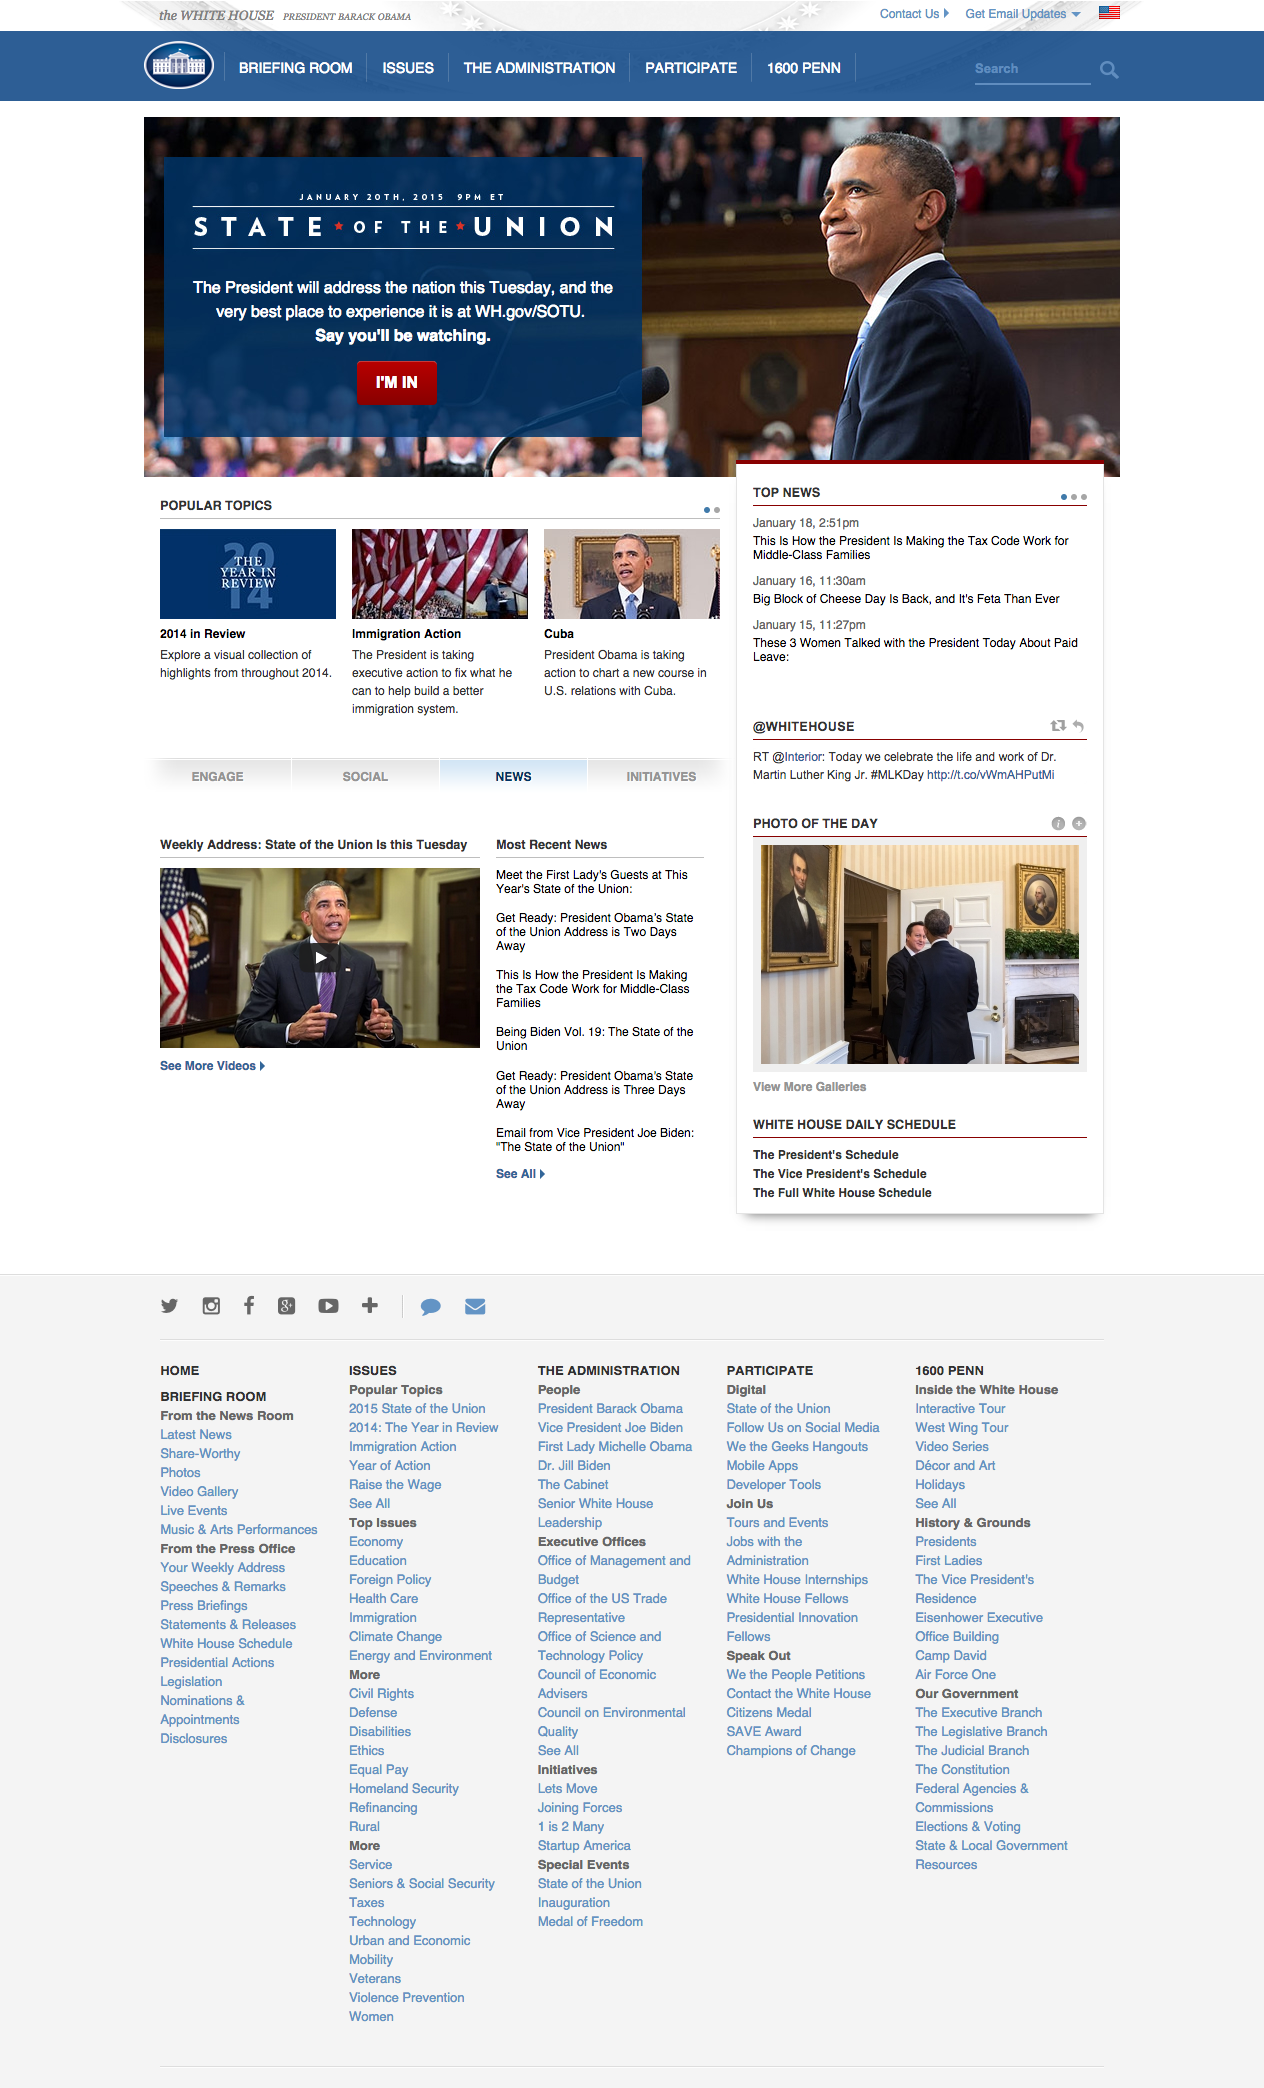 The White House website looks like a news site, which is its purpose. The site is constantly being upgraded with fresh content.